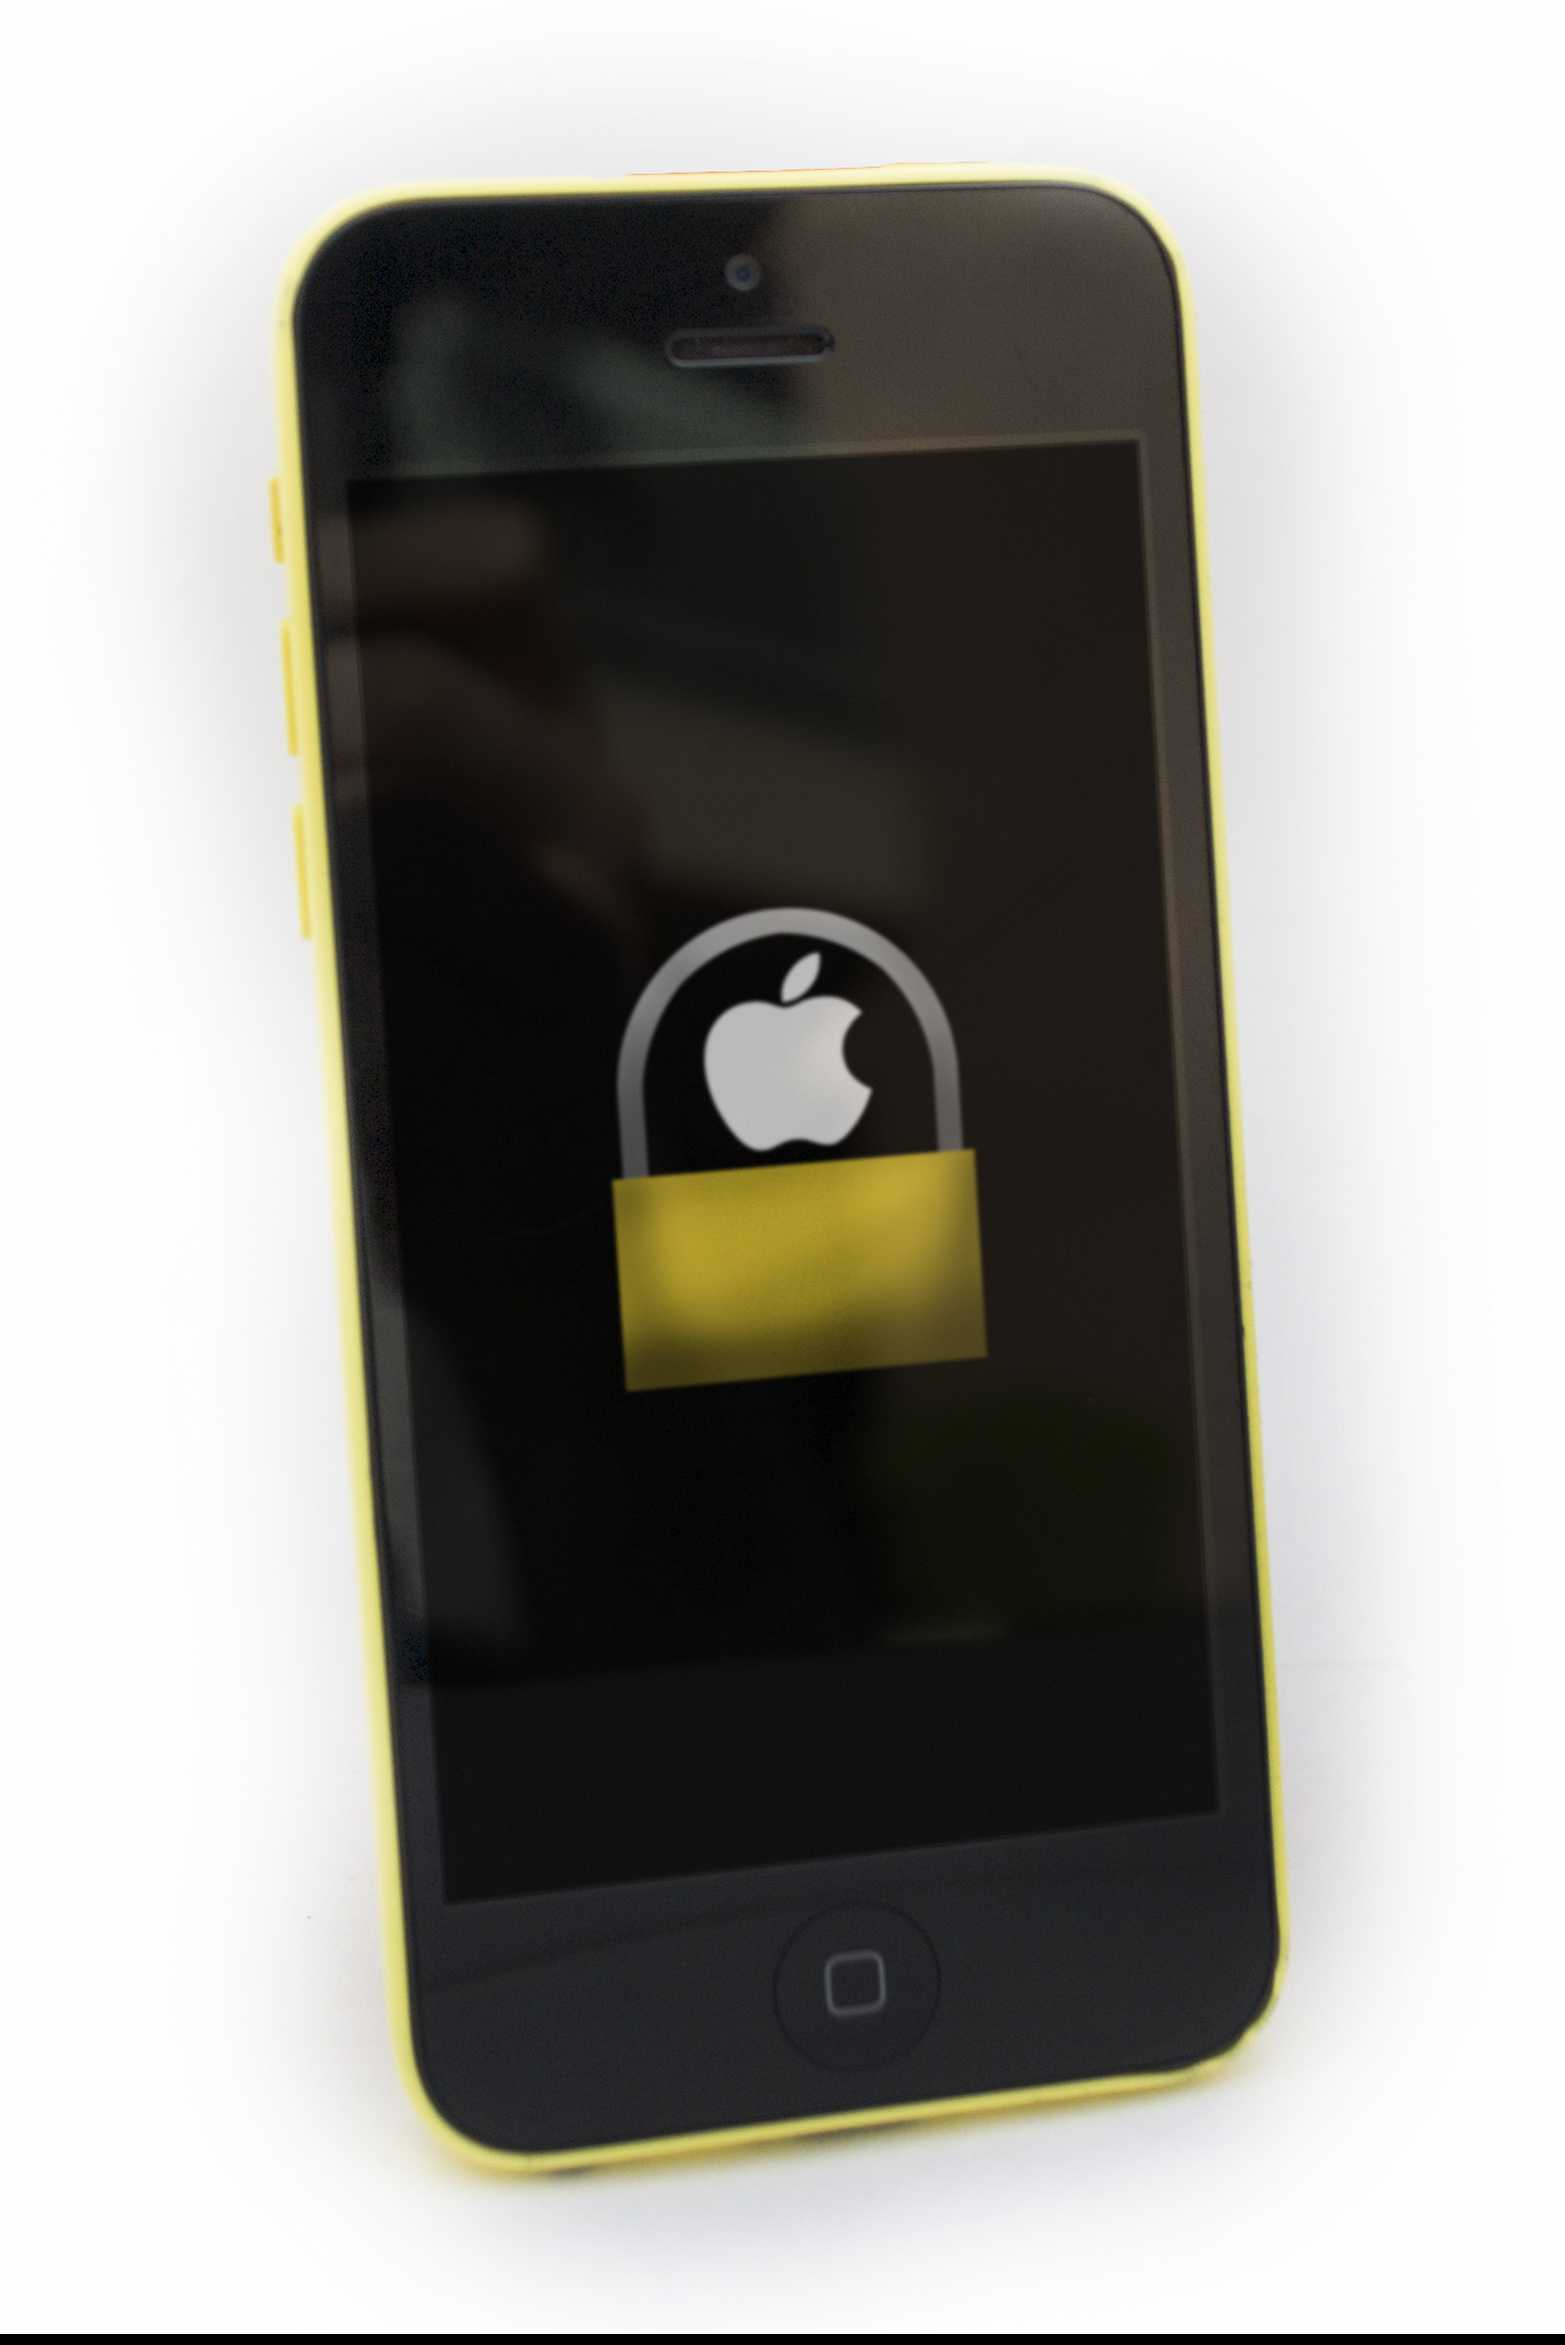 Technology corporation Apple Inc. has refused to unlock an iPhone containing information pertinent to an investigation.